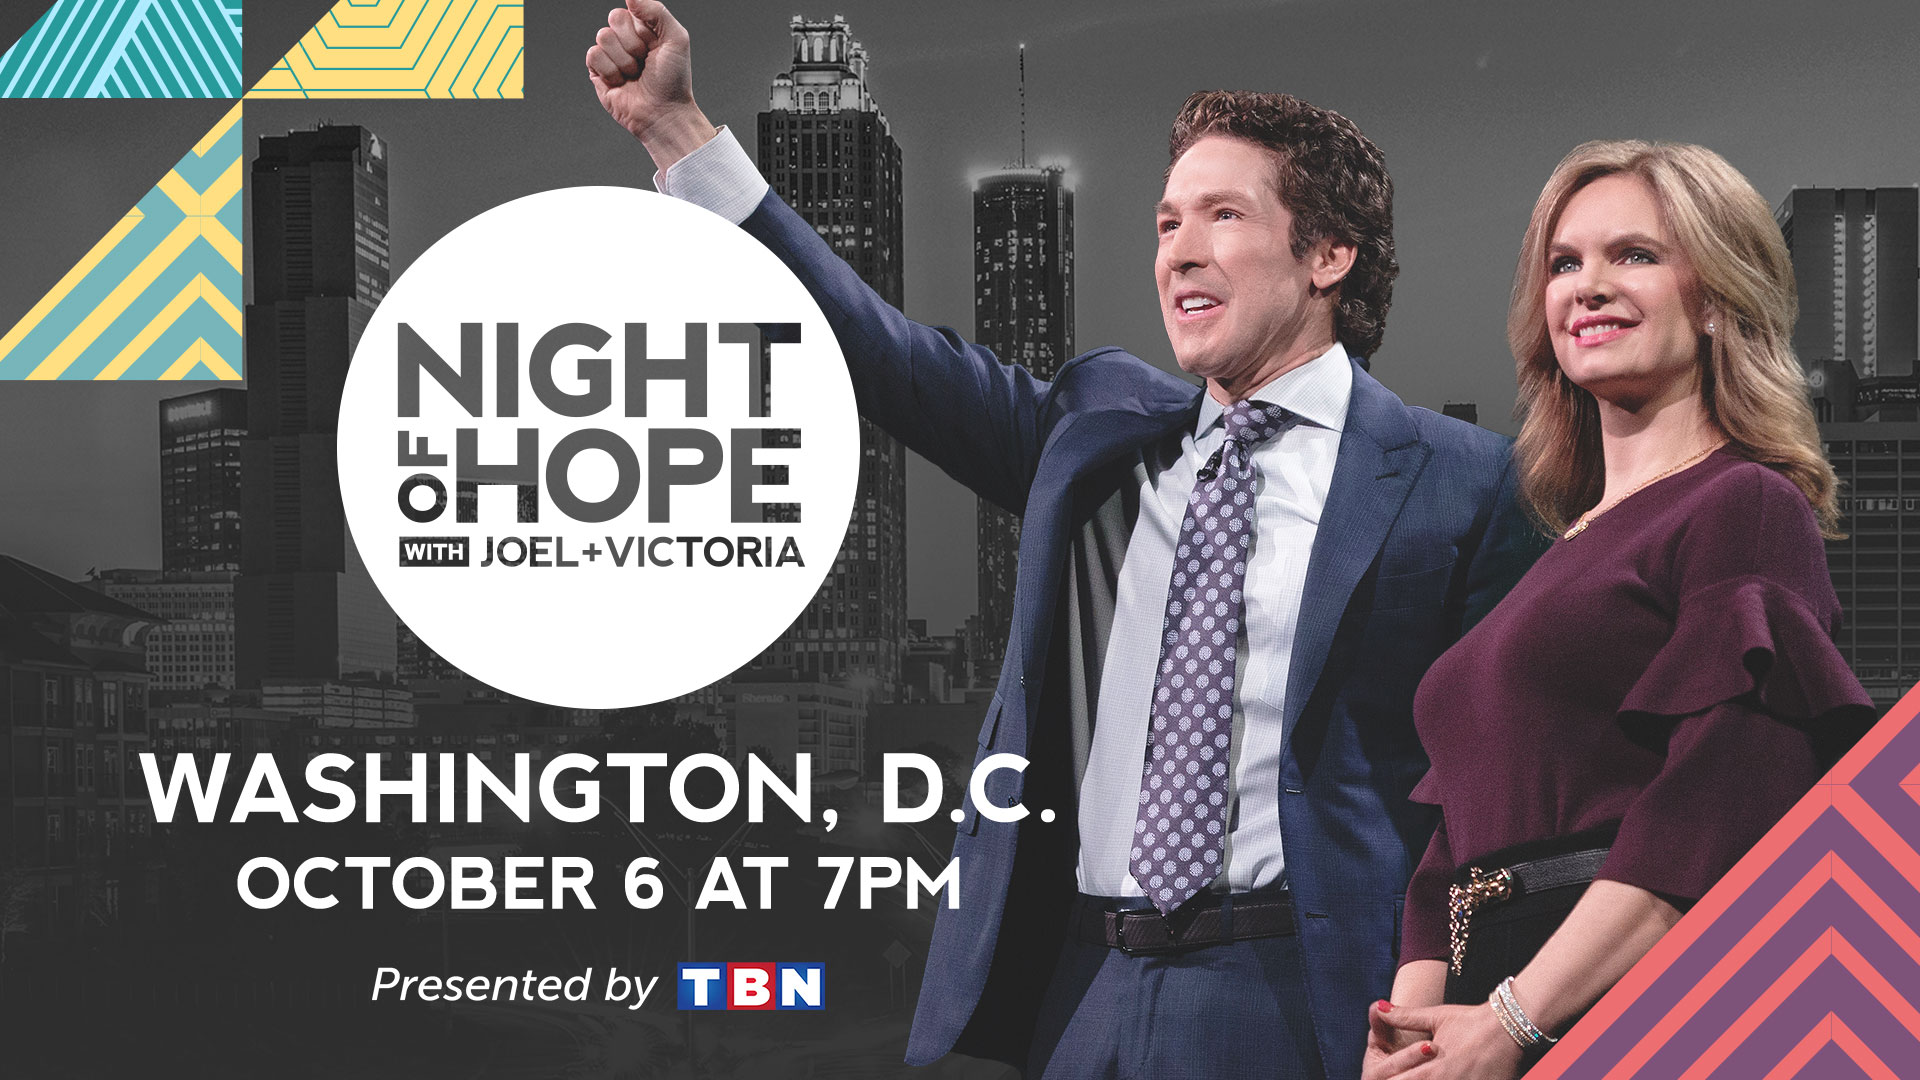 Joel and Victoria Osteen Host A Night of Hope